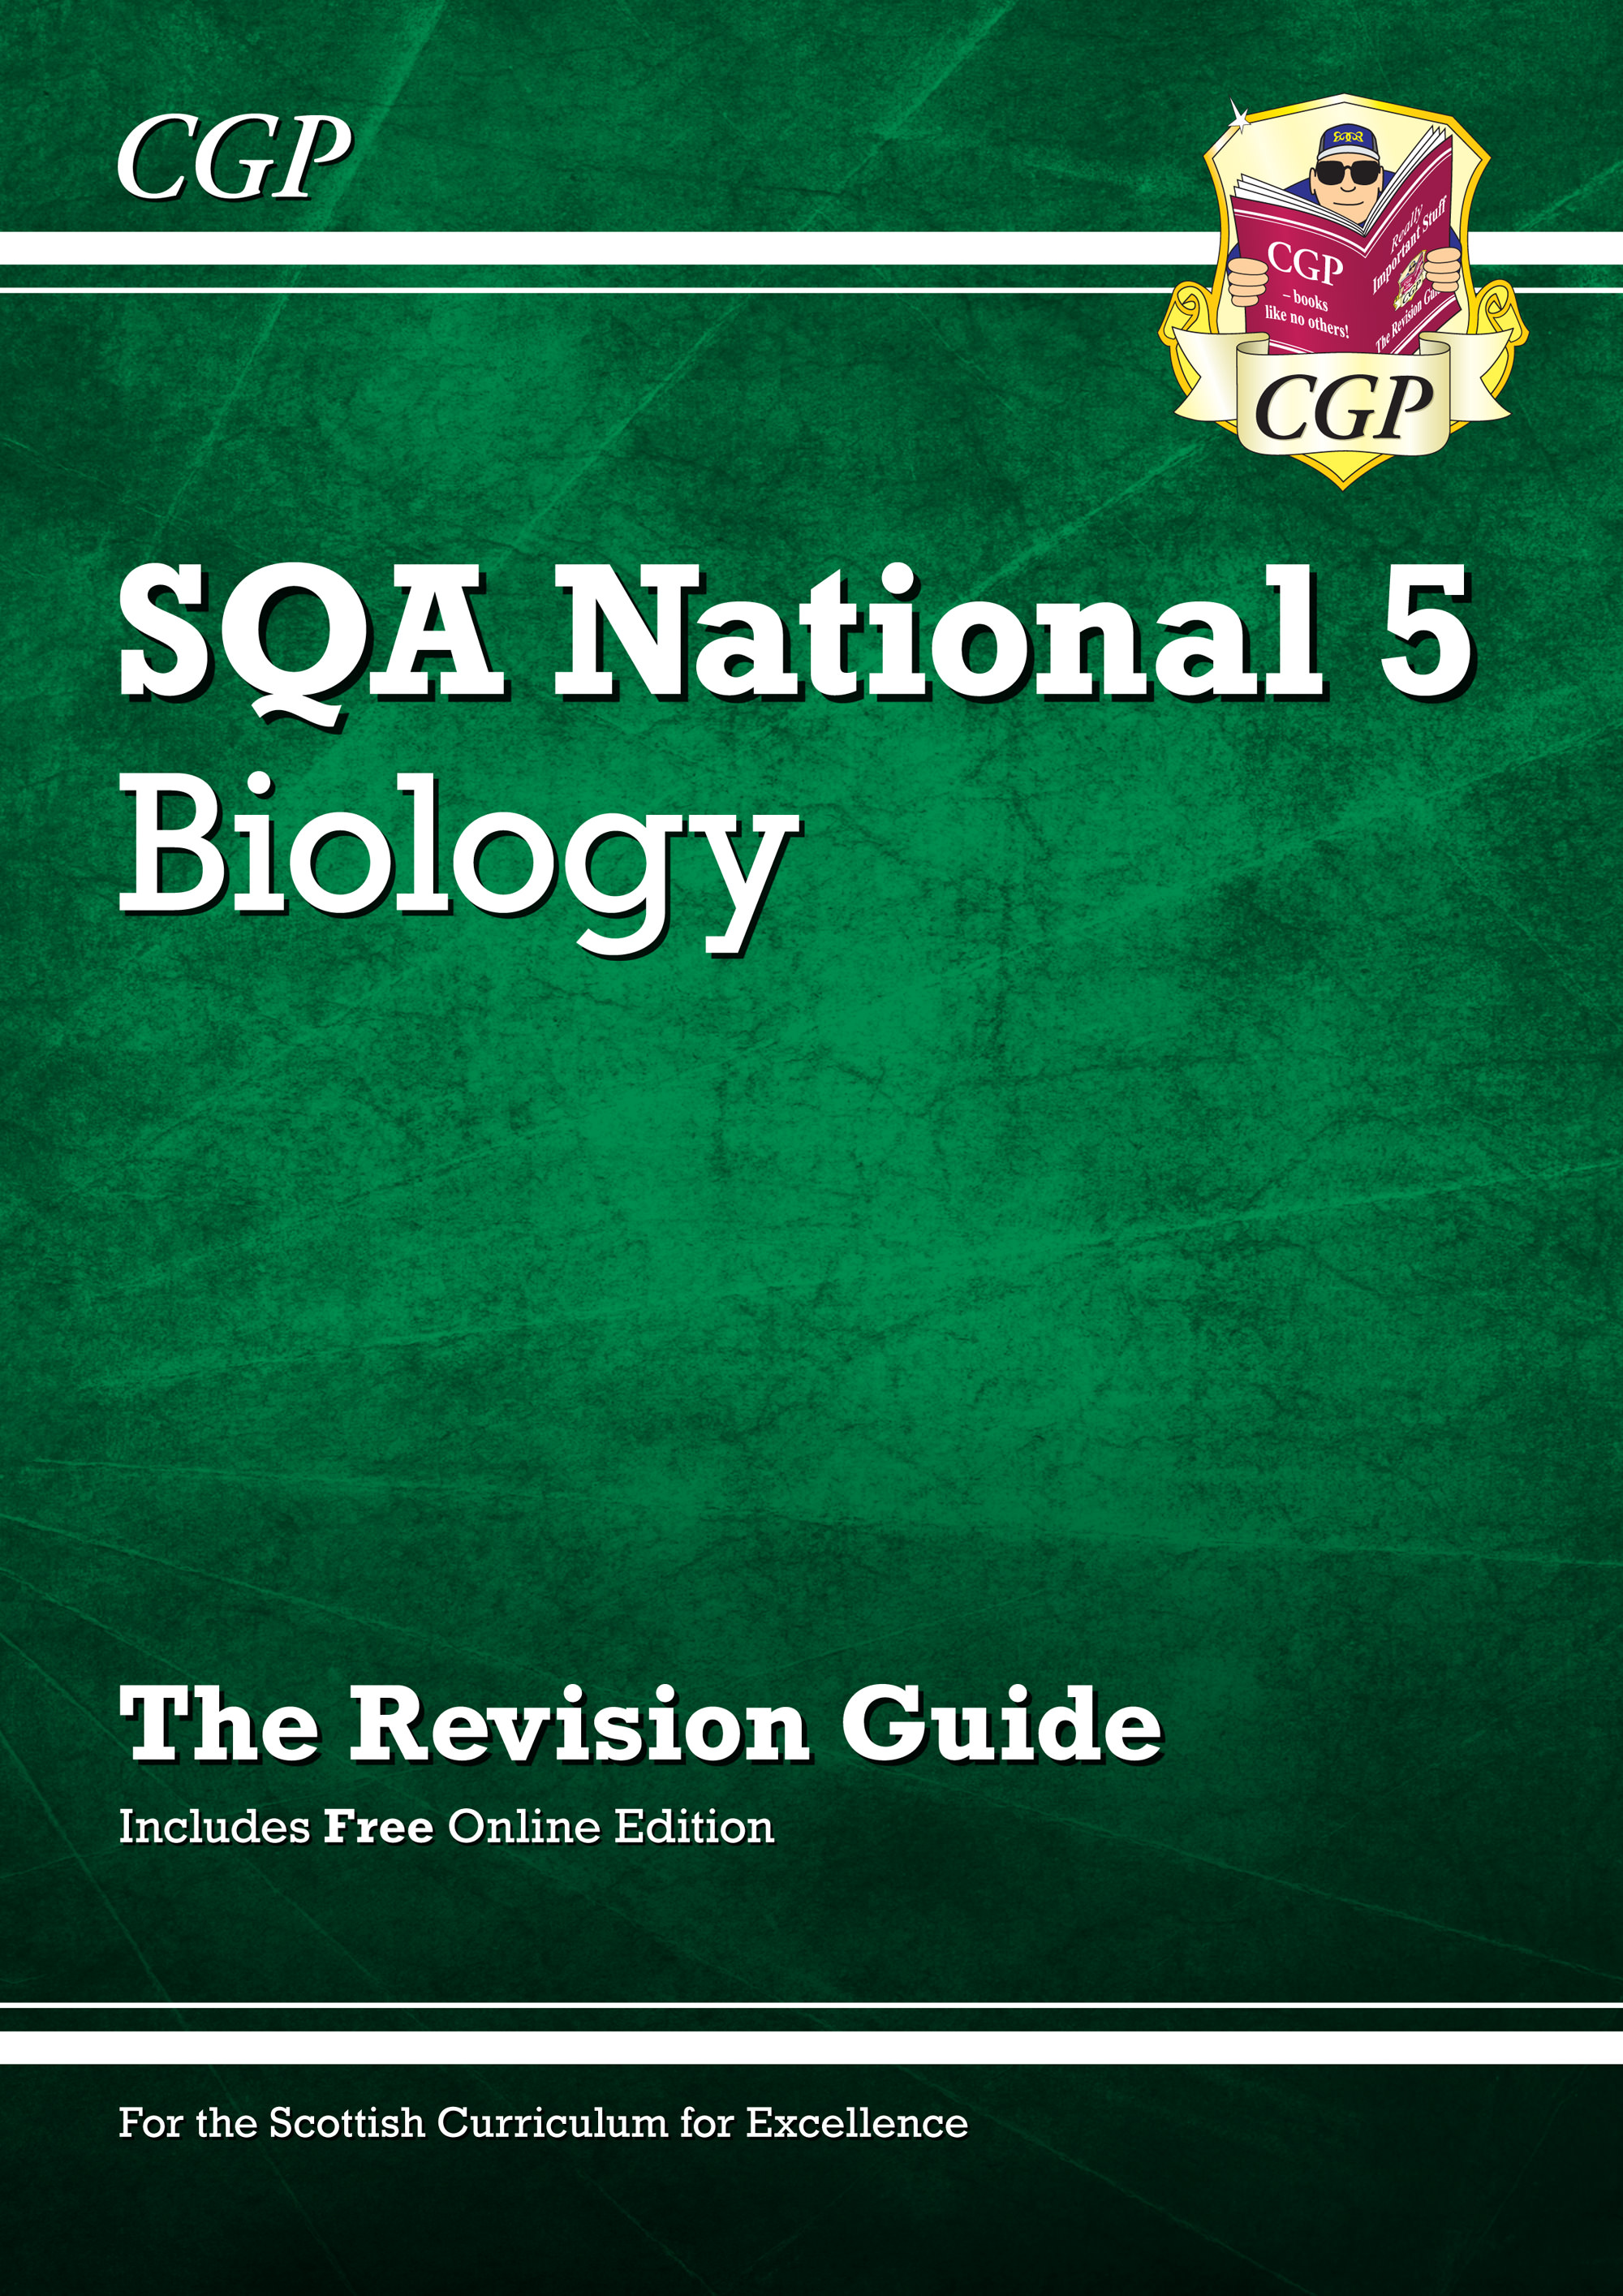 BZR41 - National 5 Biology: SQA Revision Guide with Online Edition